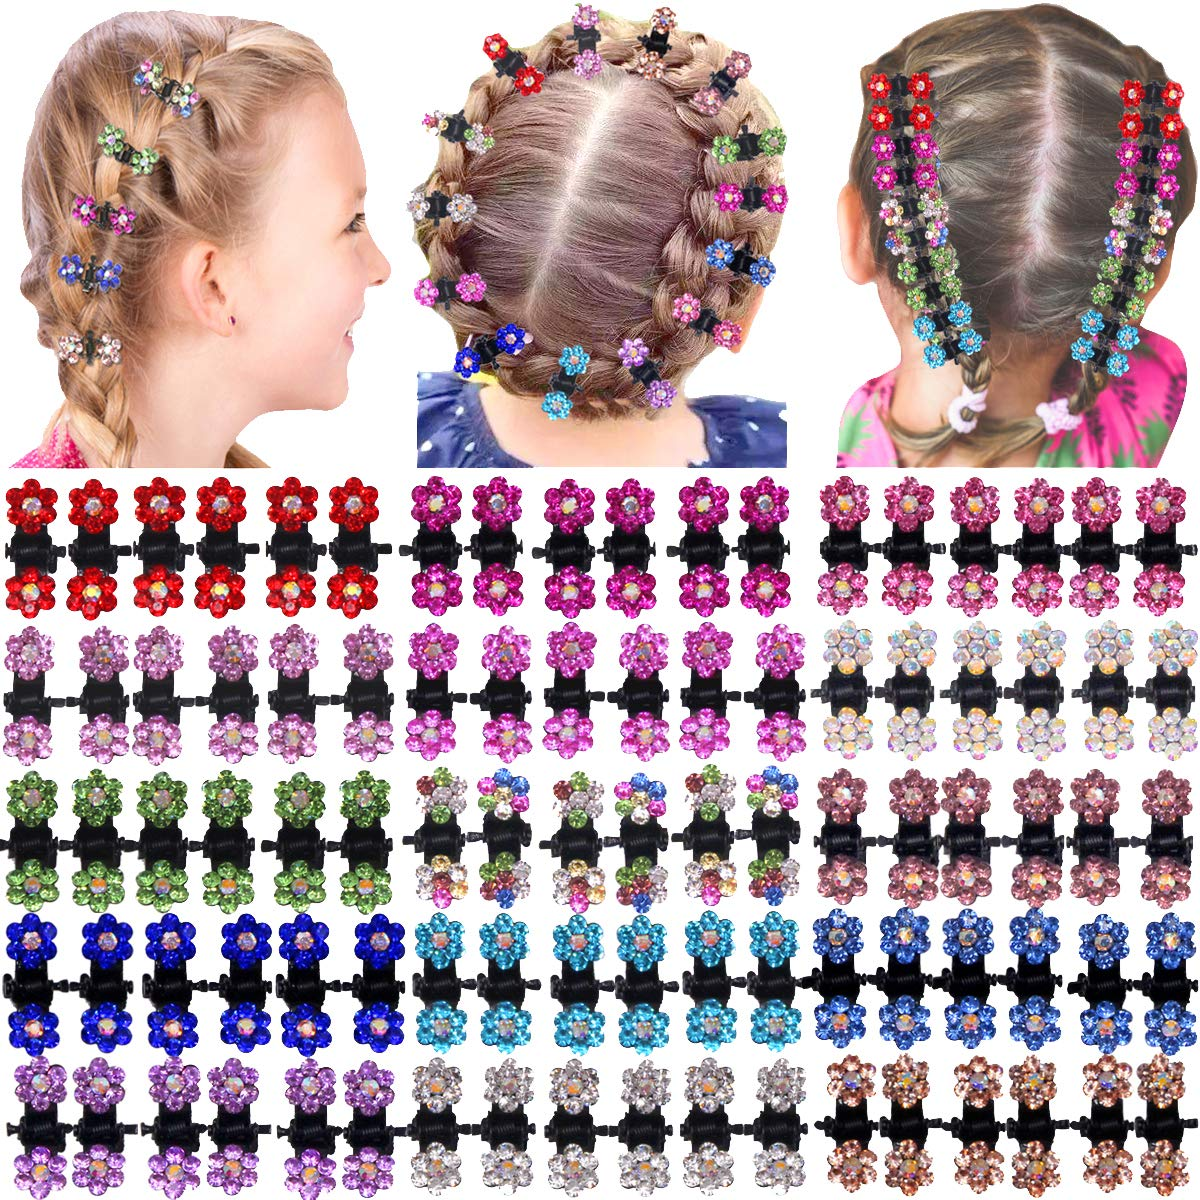 90 Pieces Baby Girls Hair Claw Clips Crystal Rhinestones Tiny Hair Clips Mix Colored Flower Hair Bangs Pin for Kids Women Hair Accessories (6 X15 Colors)